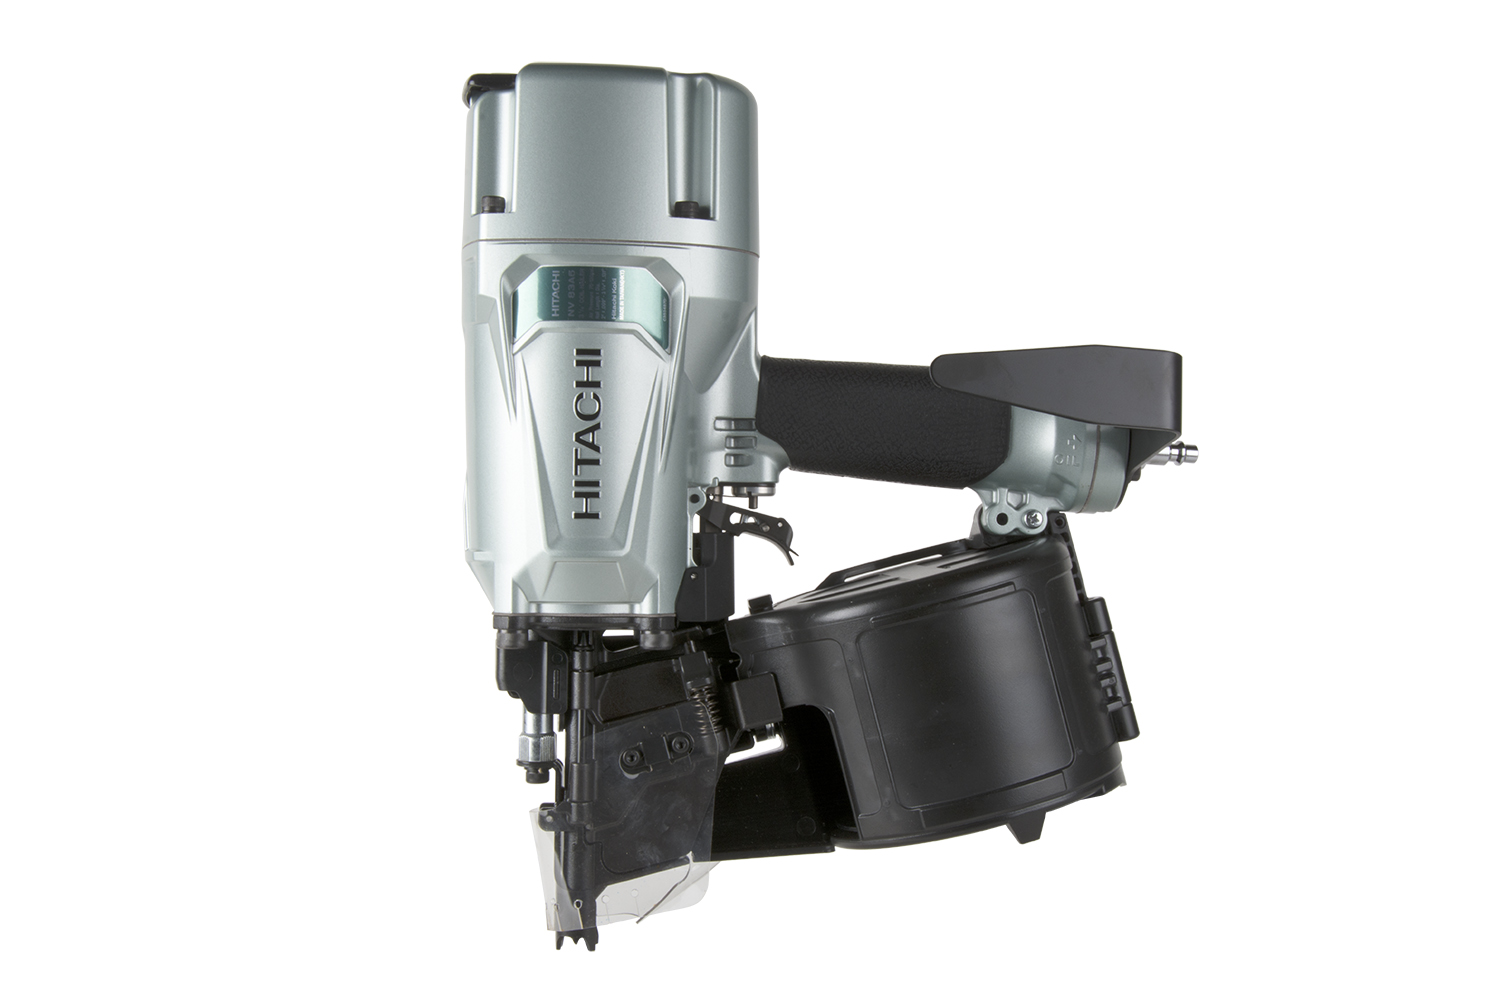 Hitachi A5 Series Framing Nailers - Contractor Supply Magazine